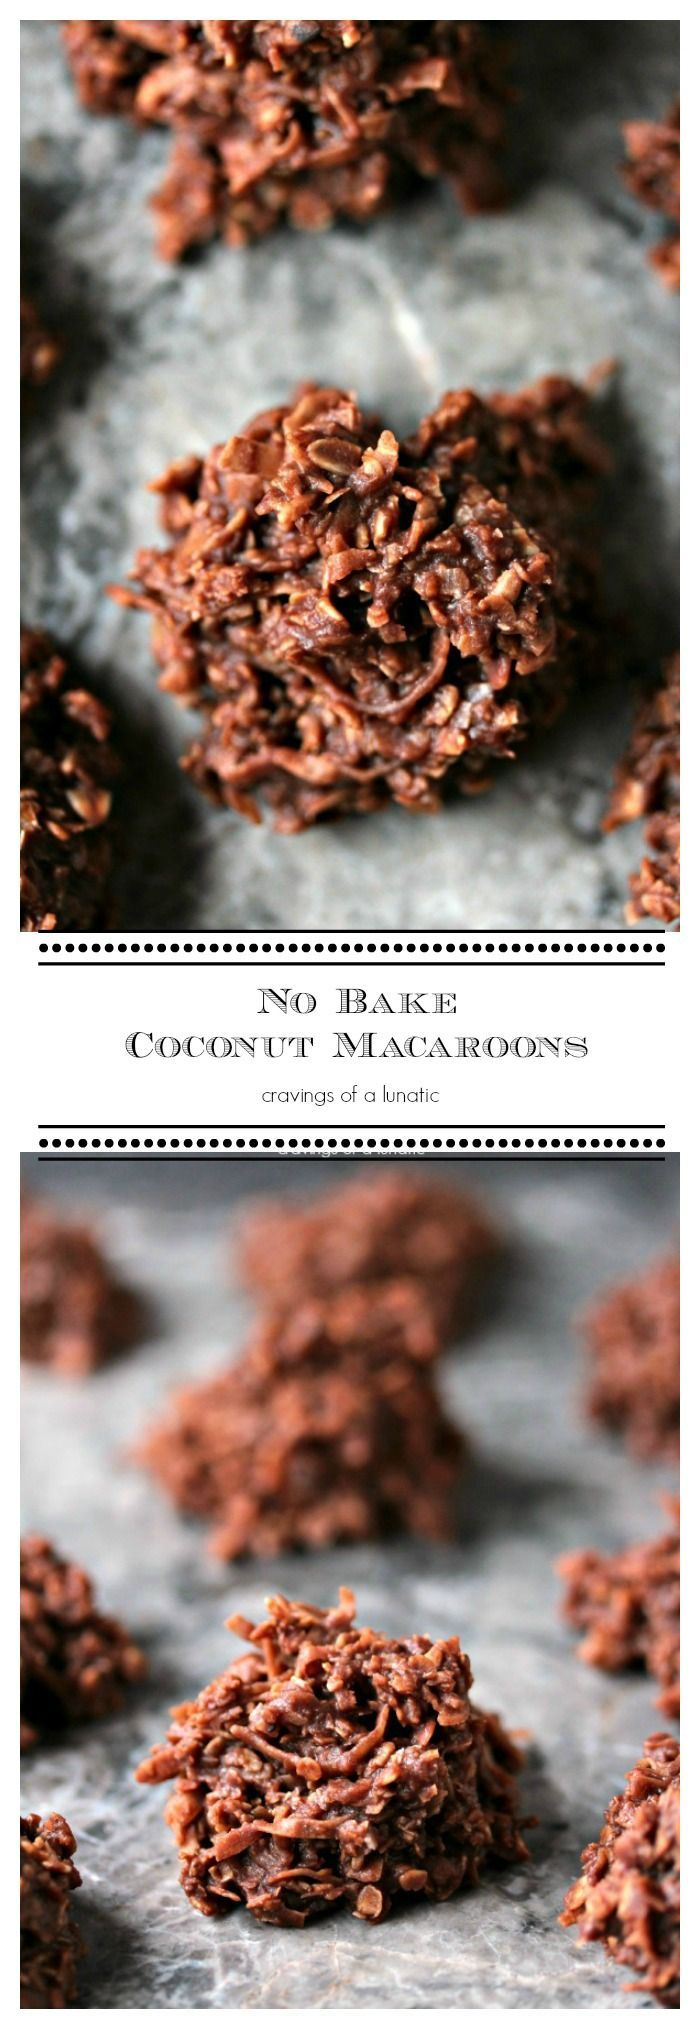 No Bake Coconut Macaroons | Simple, quick No Bake Cookies that will impress your guests without them ever guessing they took you about 10 minutes. Score! I use butter NOT shortening